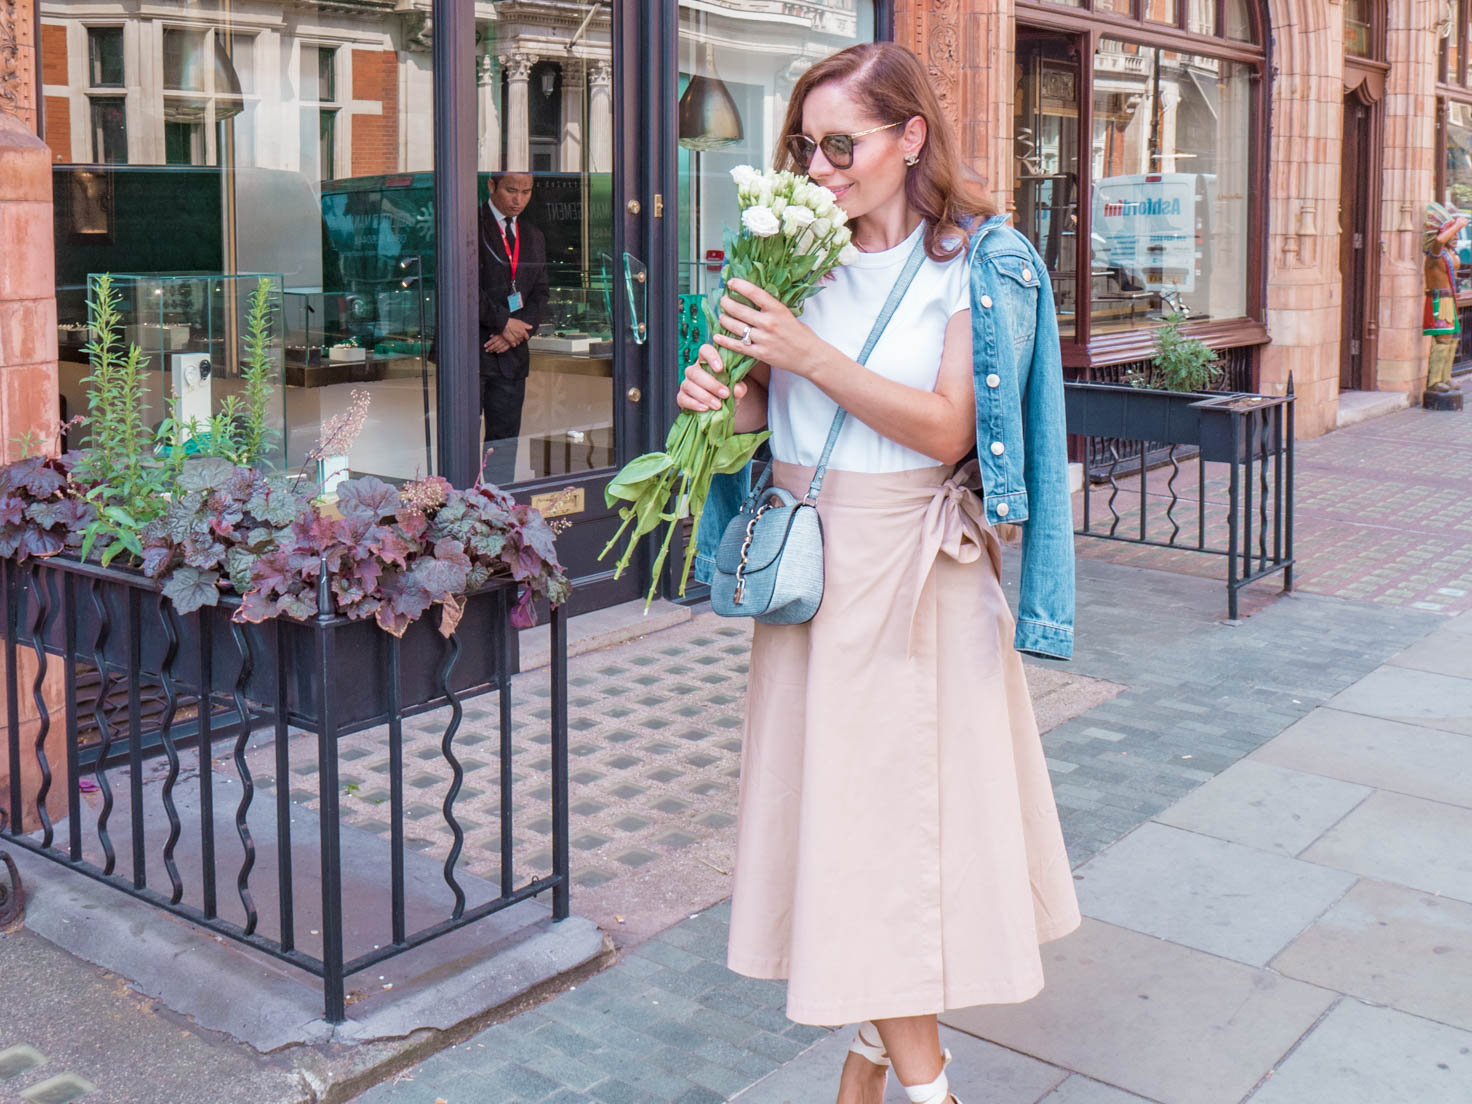 How to look chic with 4 simple tricks by Chic Journal blog